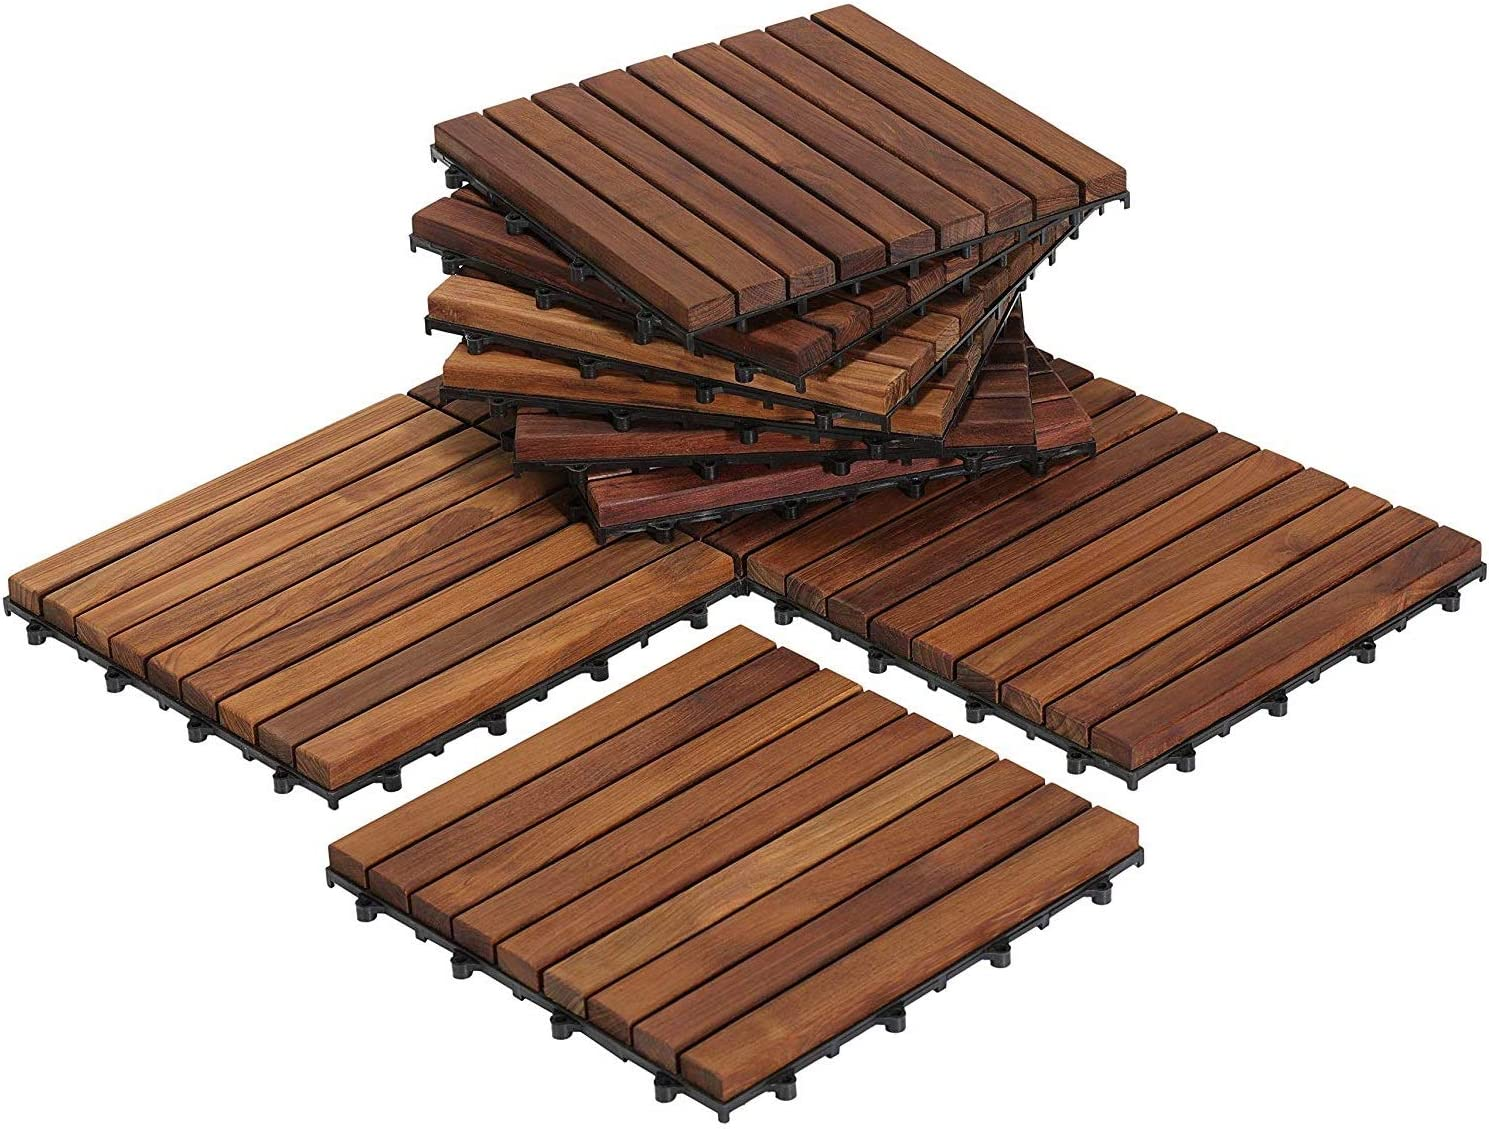 Juli EZ-Floor Interlocking Flooring Tiles in Solid Teak Wood Oiled Finish (Set of 10), Long 9 Slat